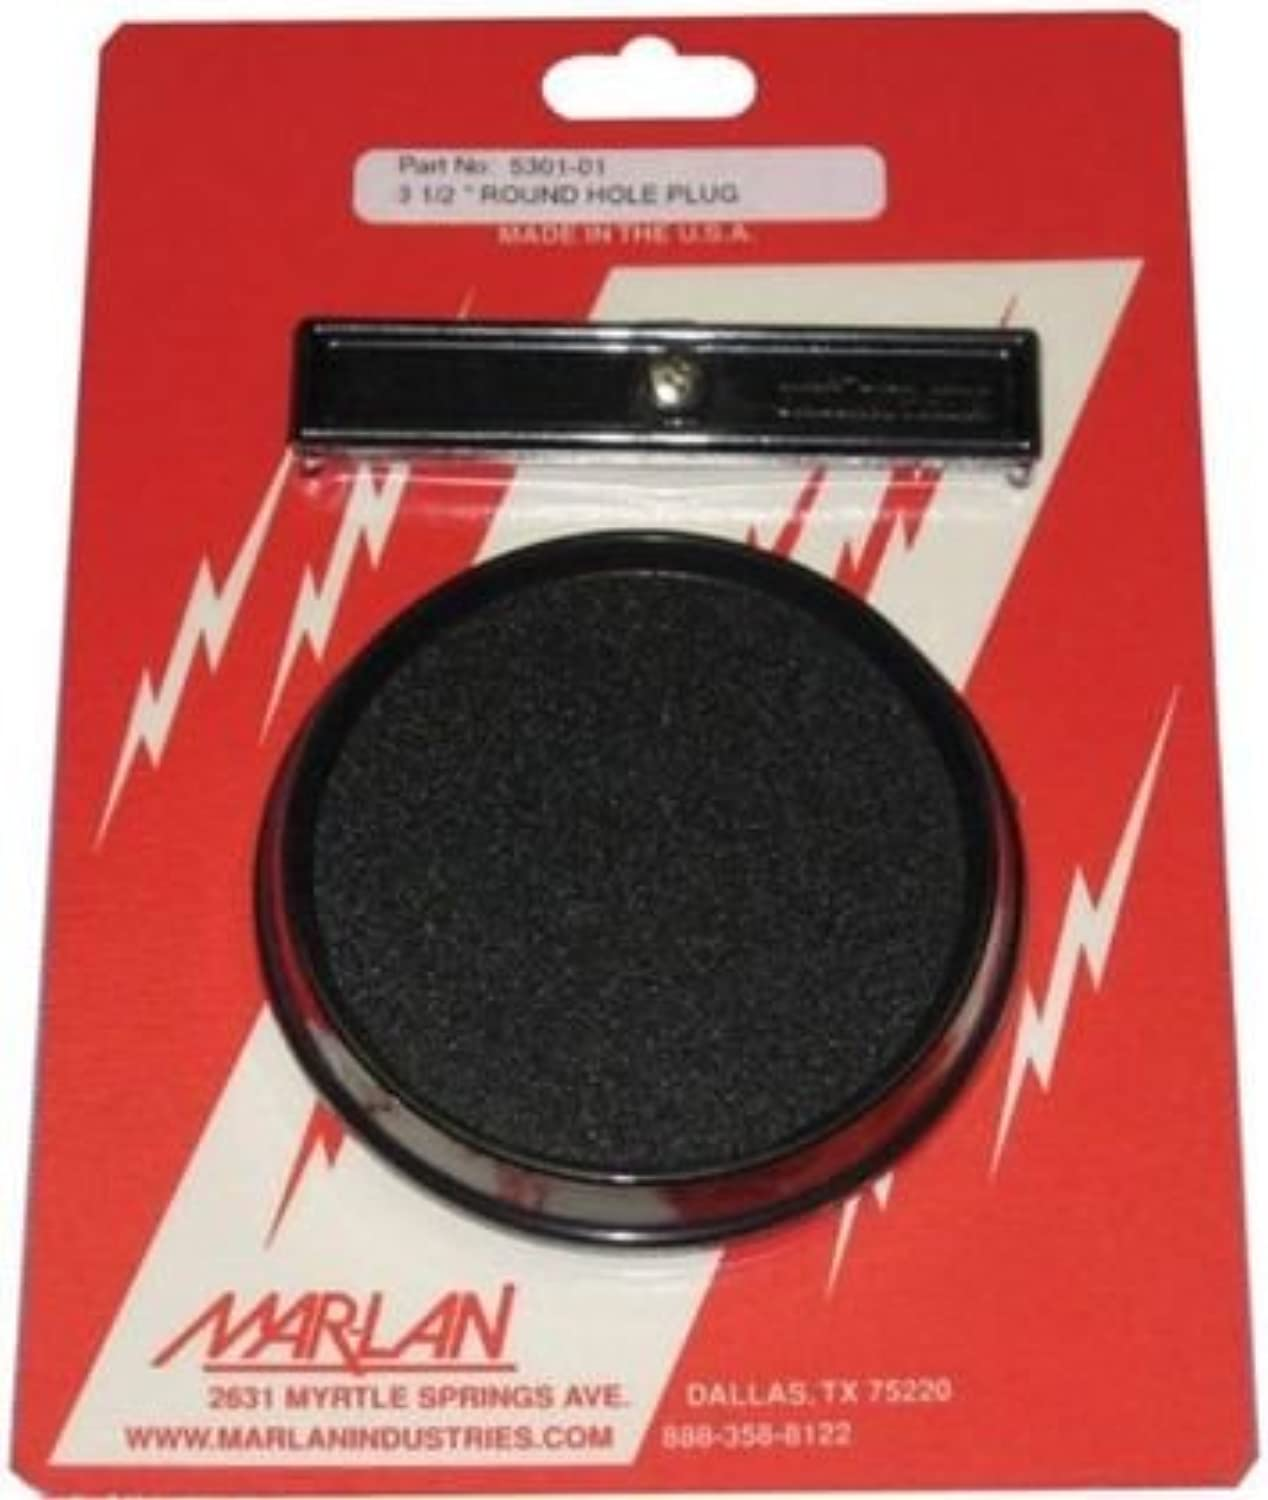 MarLan Inst Hole Cvr 3 12 Instrument Hole Covers 530101C